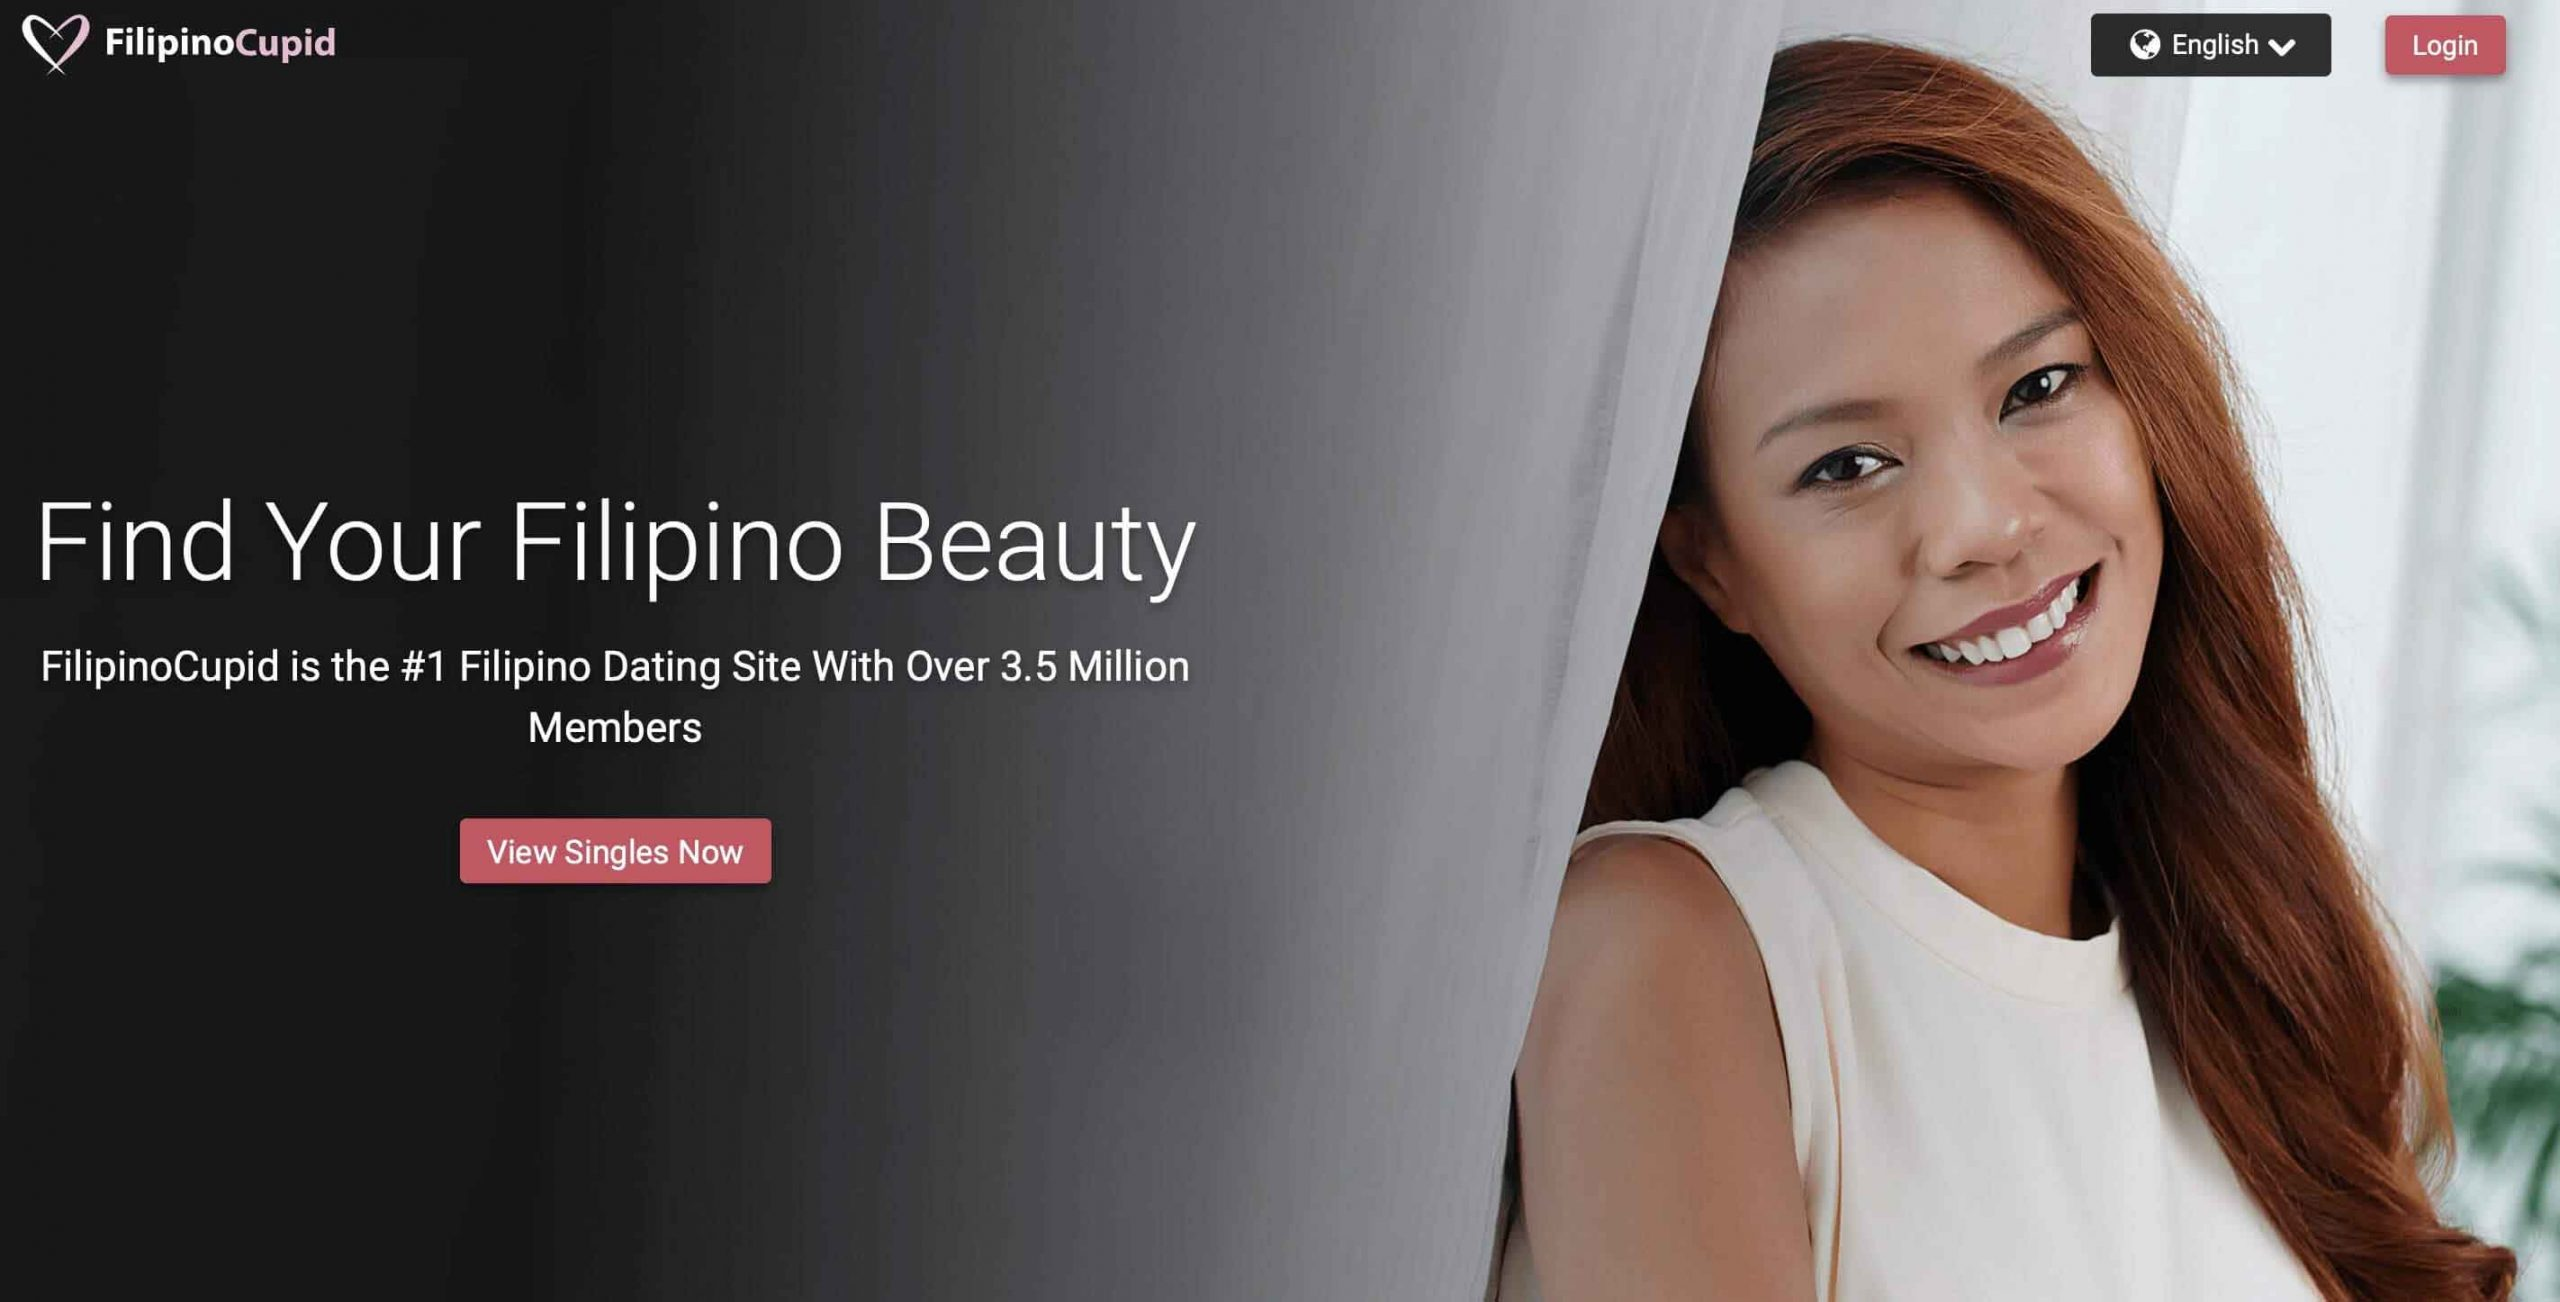 FilipinoCupid Main Page